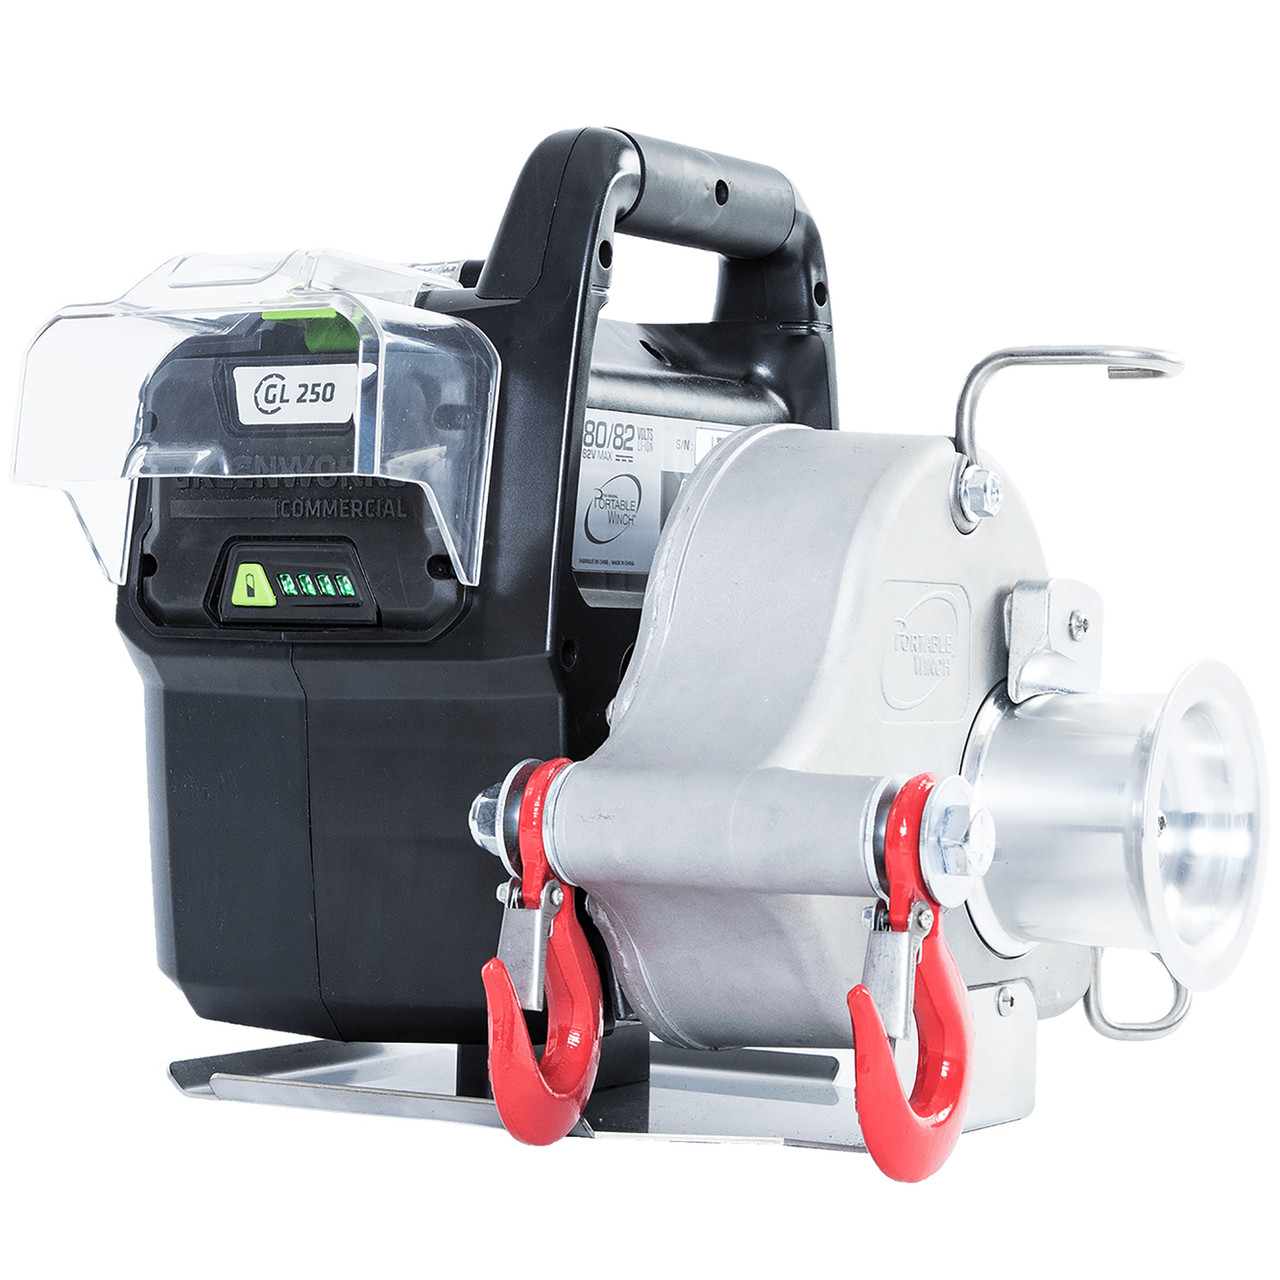 Greenworks 82W1KT 82V 2200 lb Max Pull Portable Battery-Powered Winch w/ 4Ah Battery & Charger Image